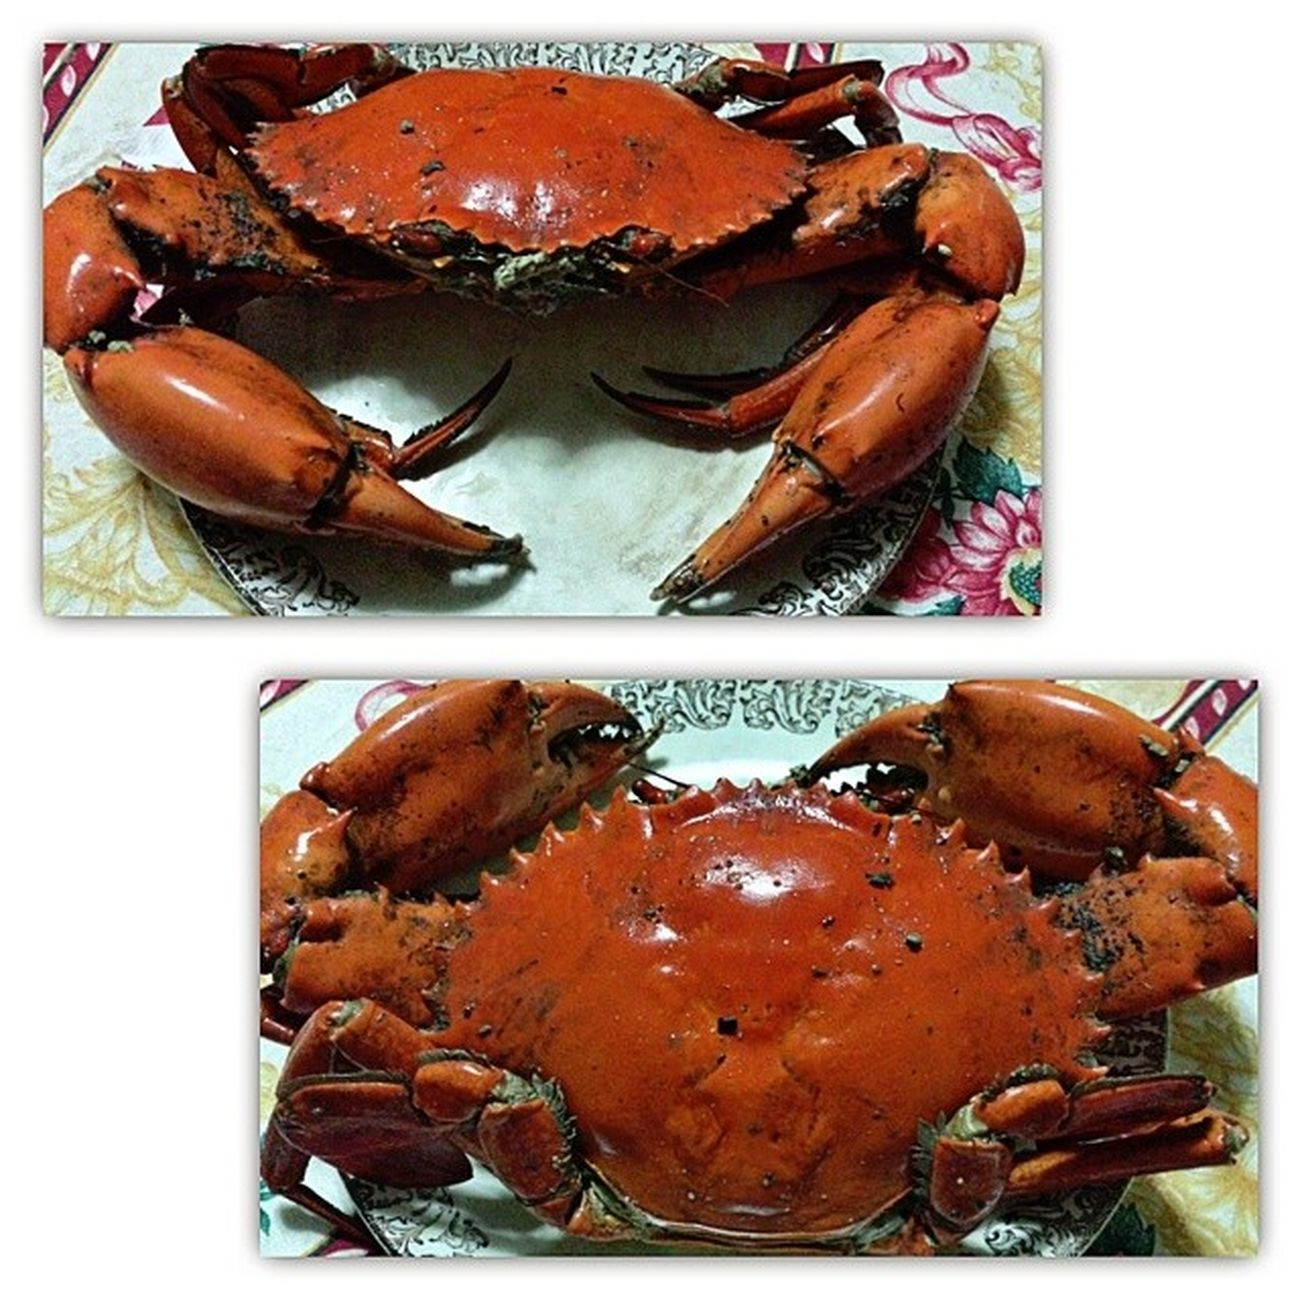 I'm going to eat you decepticon-like crabby! 😲Thanks to Lolo Wilson! 😍Crabfest Crabwasted